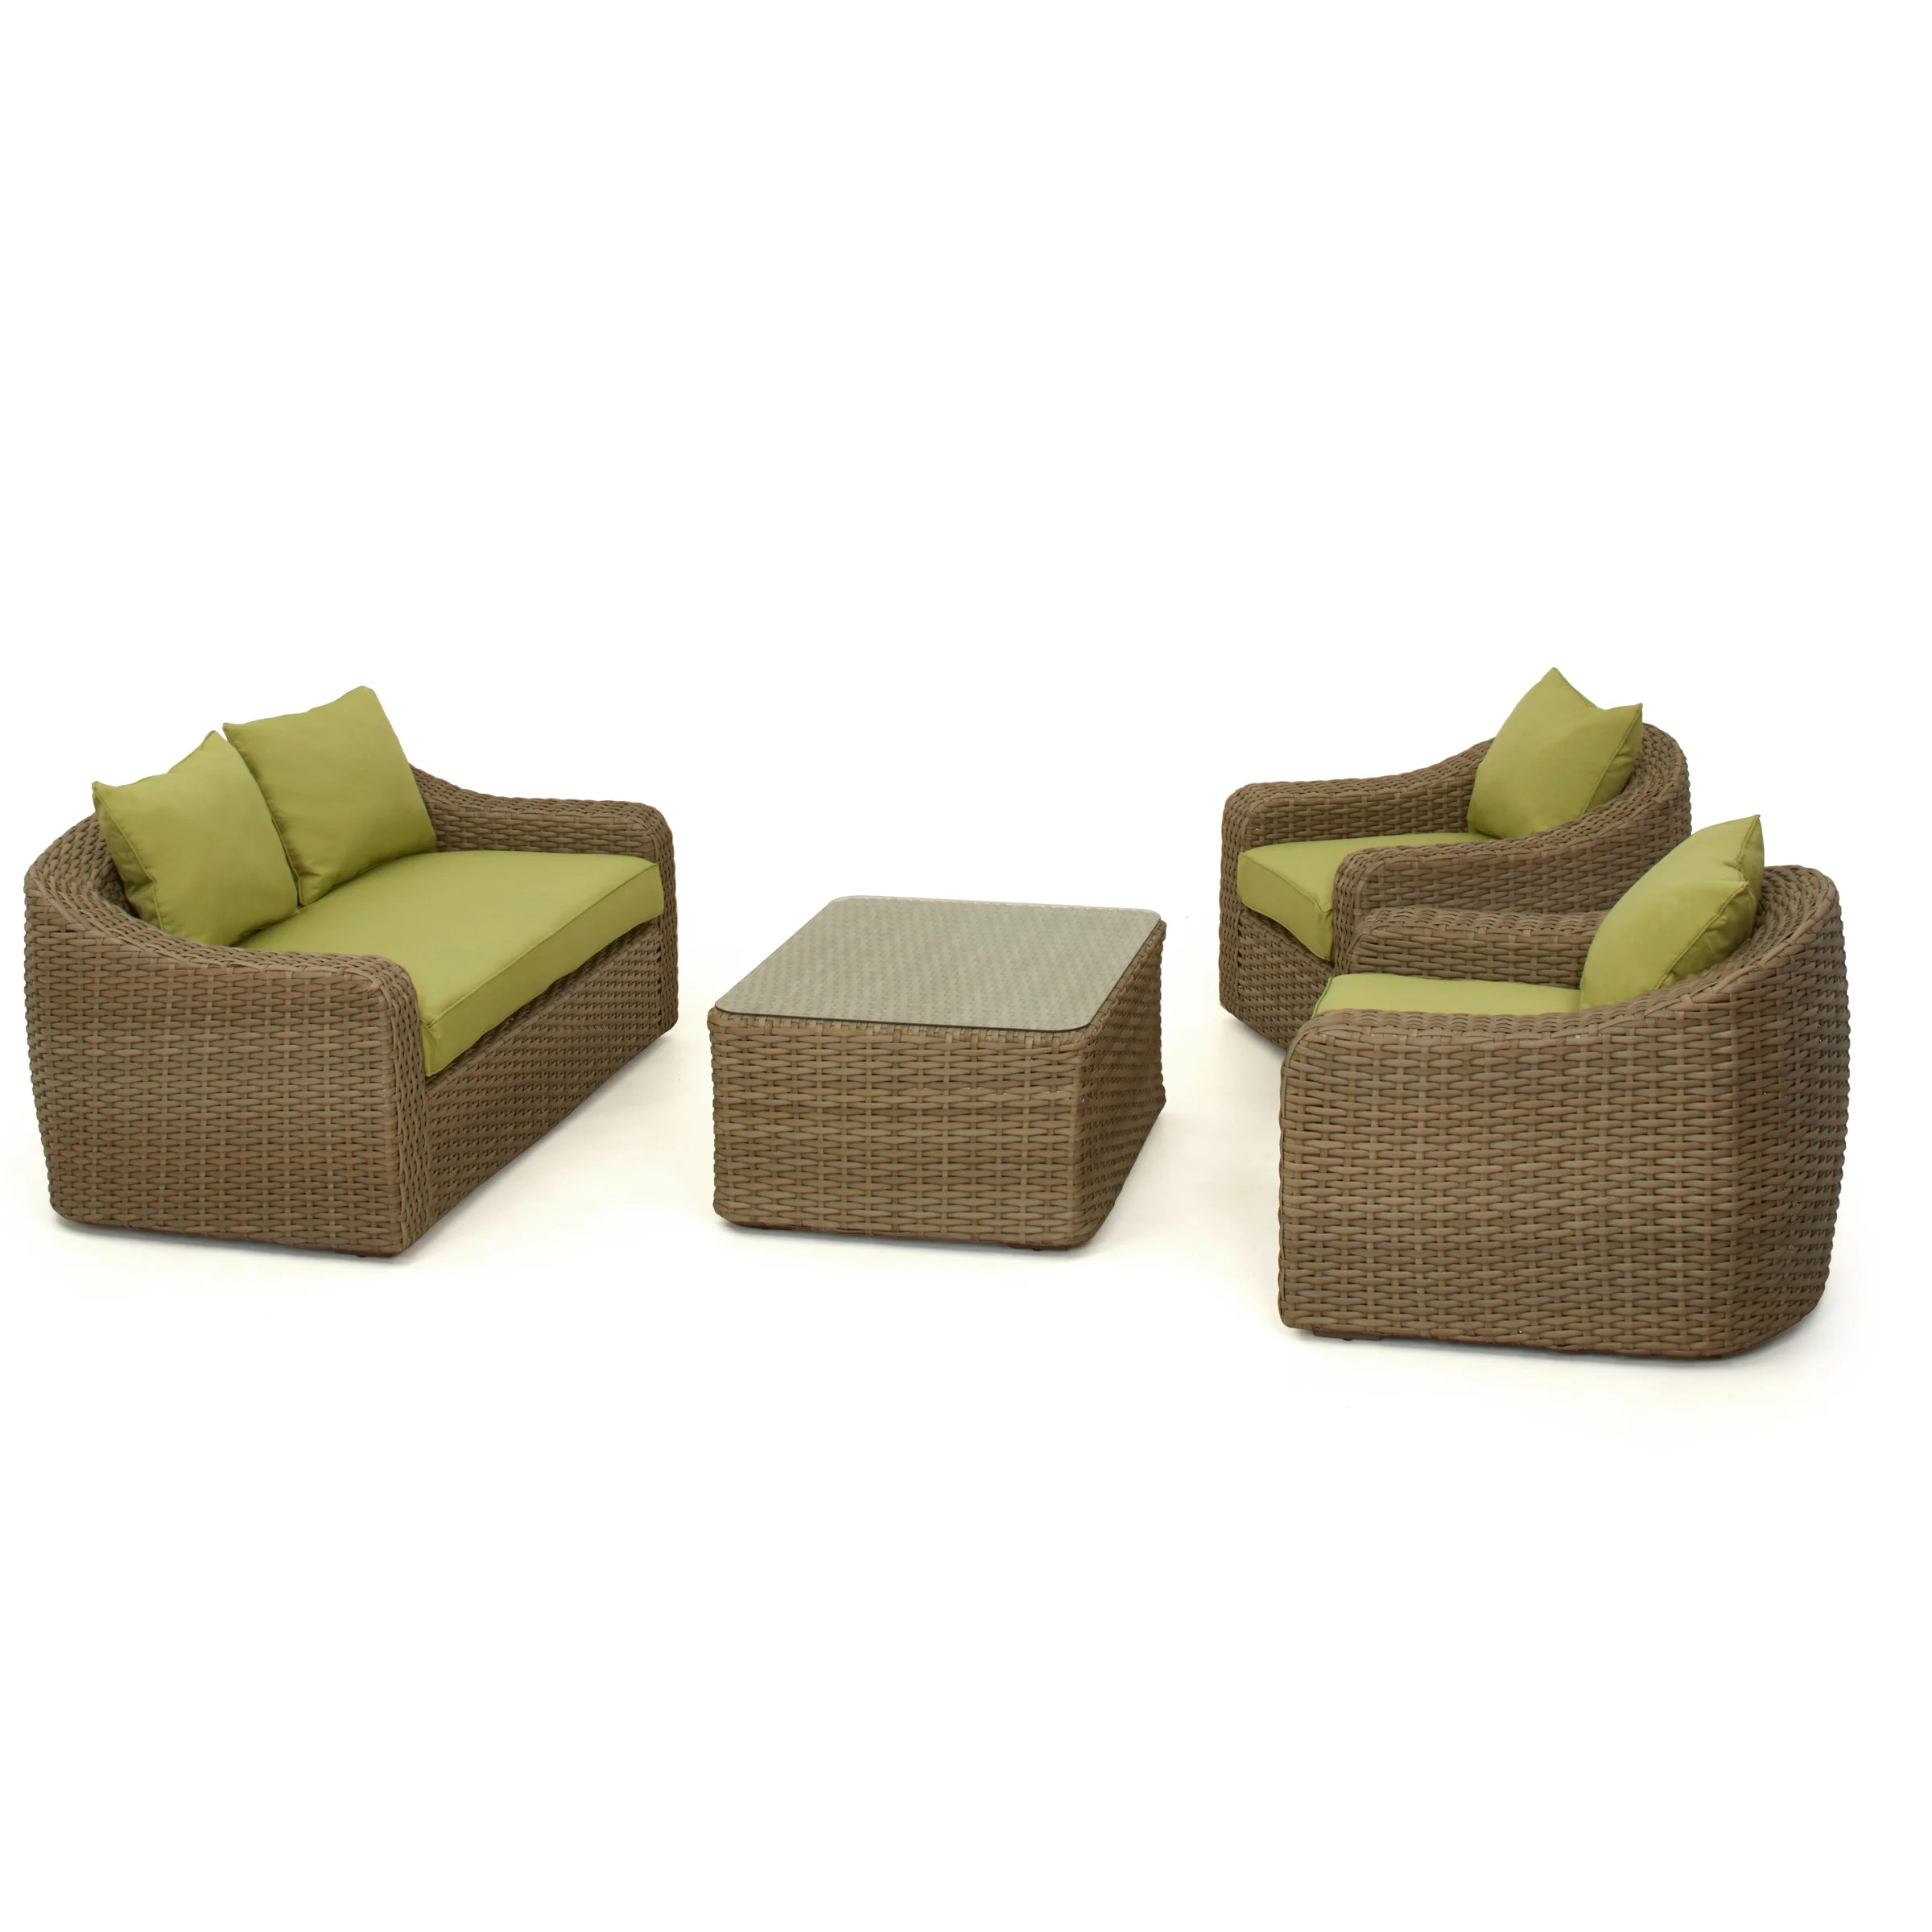 2 Seater Rattan Sofa Cushions Maze Rattan Milan 4 Seater Sofa Set With Cushions Wayfair Uk